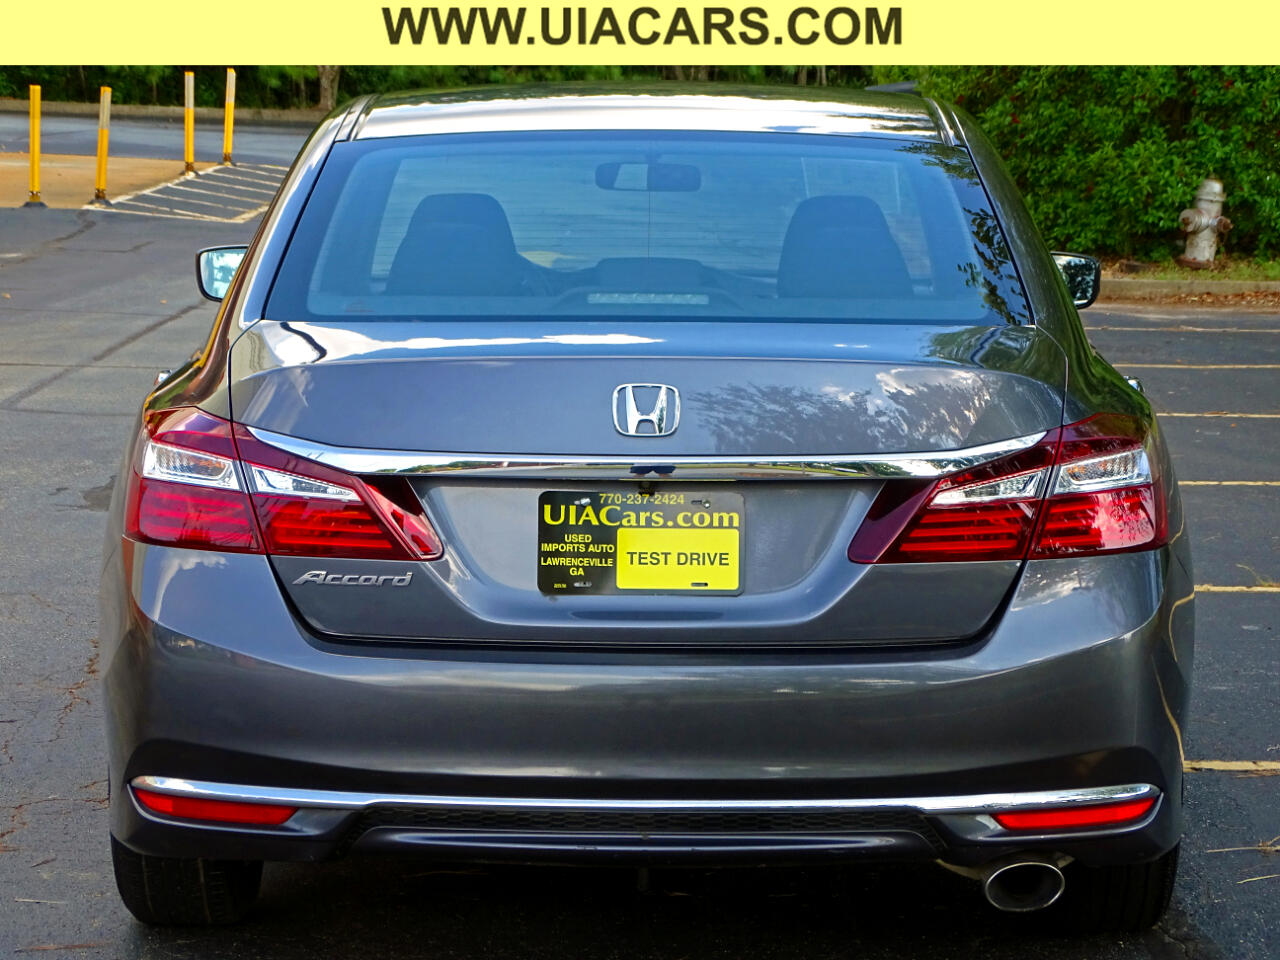 2016 Honda Accord Sedan 4dr I4 CVT LX